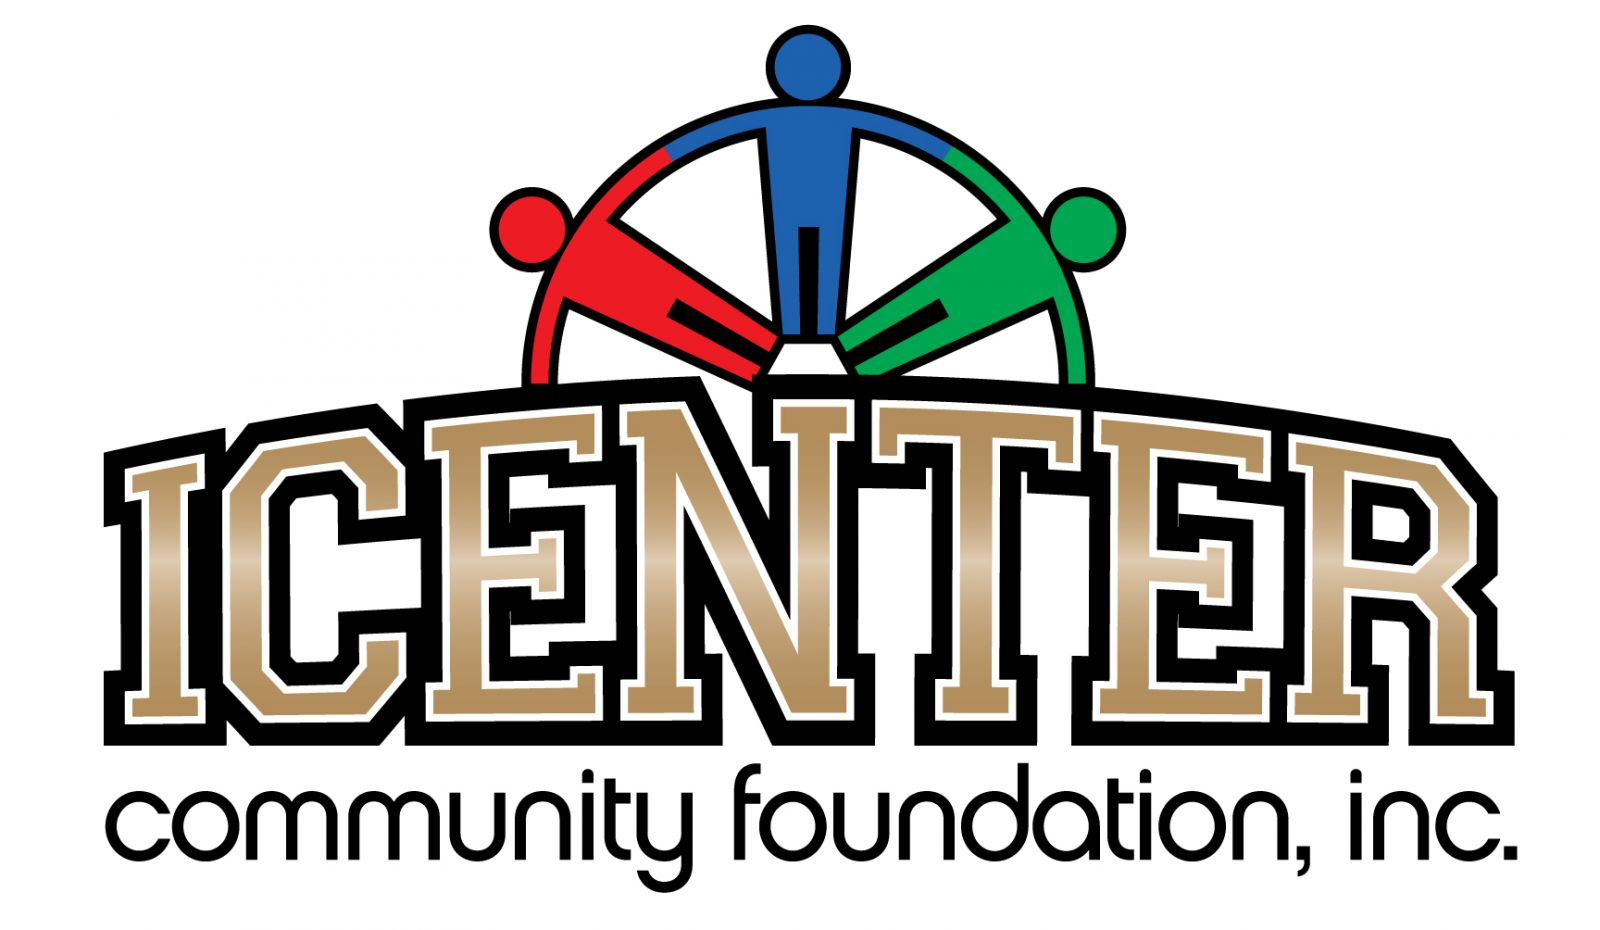 iCenter Foundation